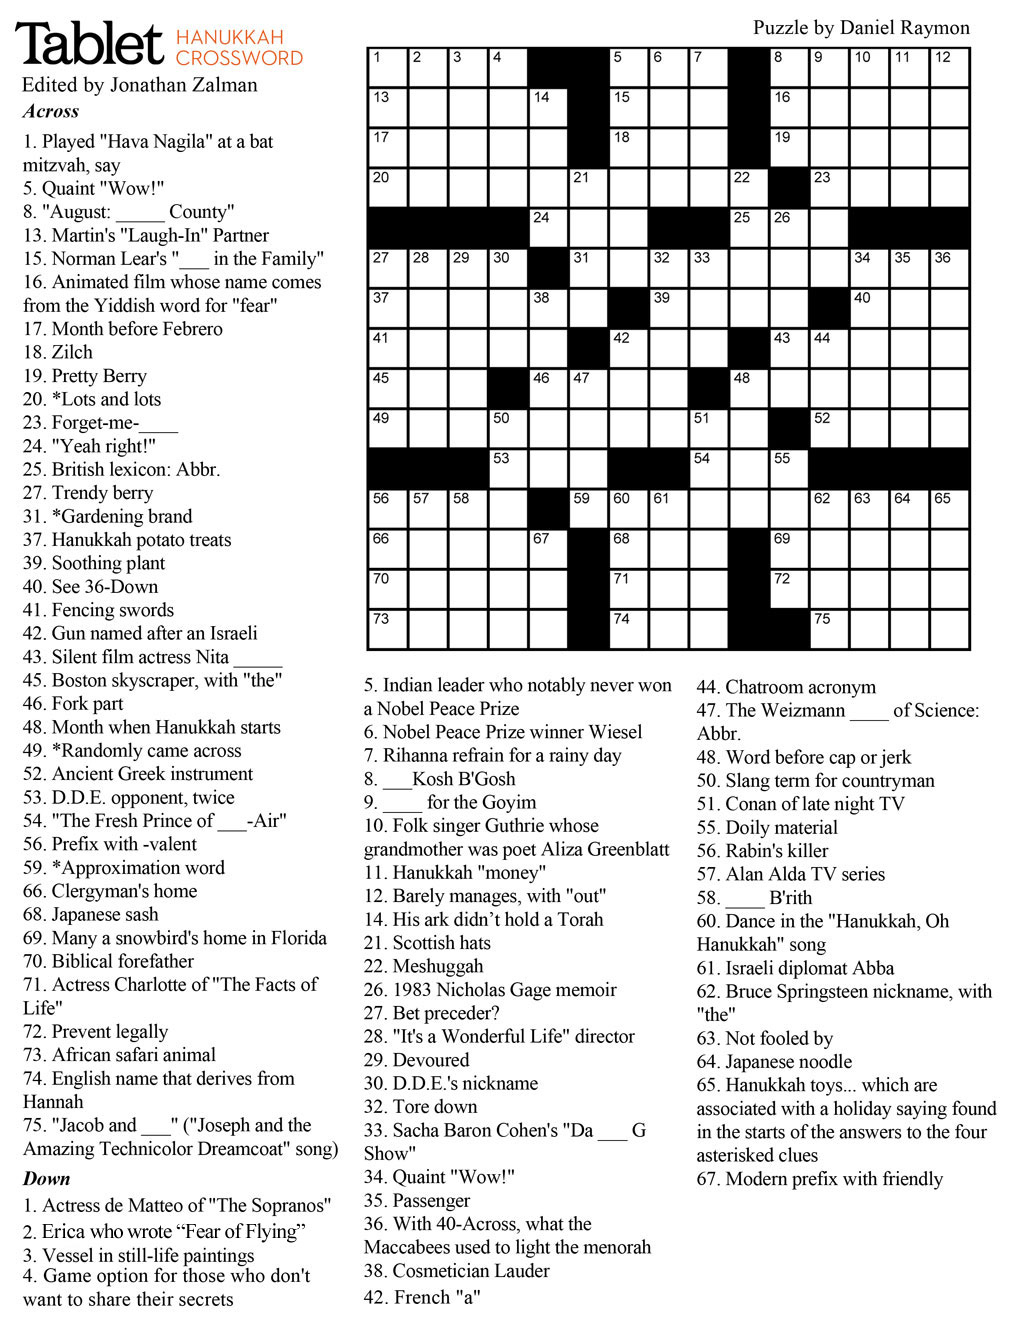 Wind Down With Our Hanukkah Crossword Puzzle! – Tablet Magazine - Printable Daily Puzzles